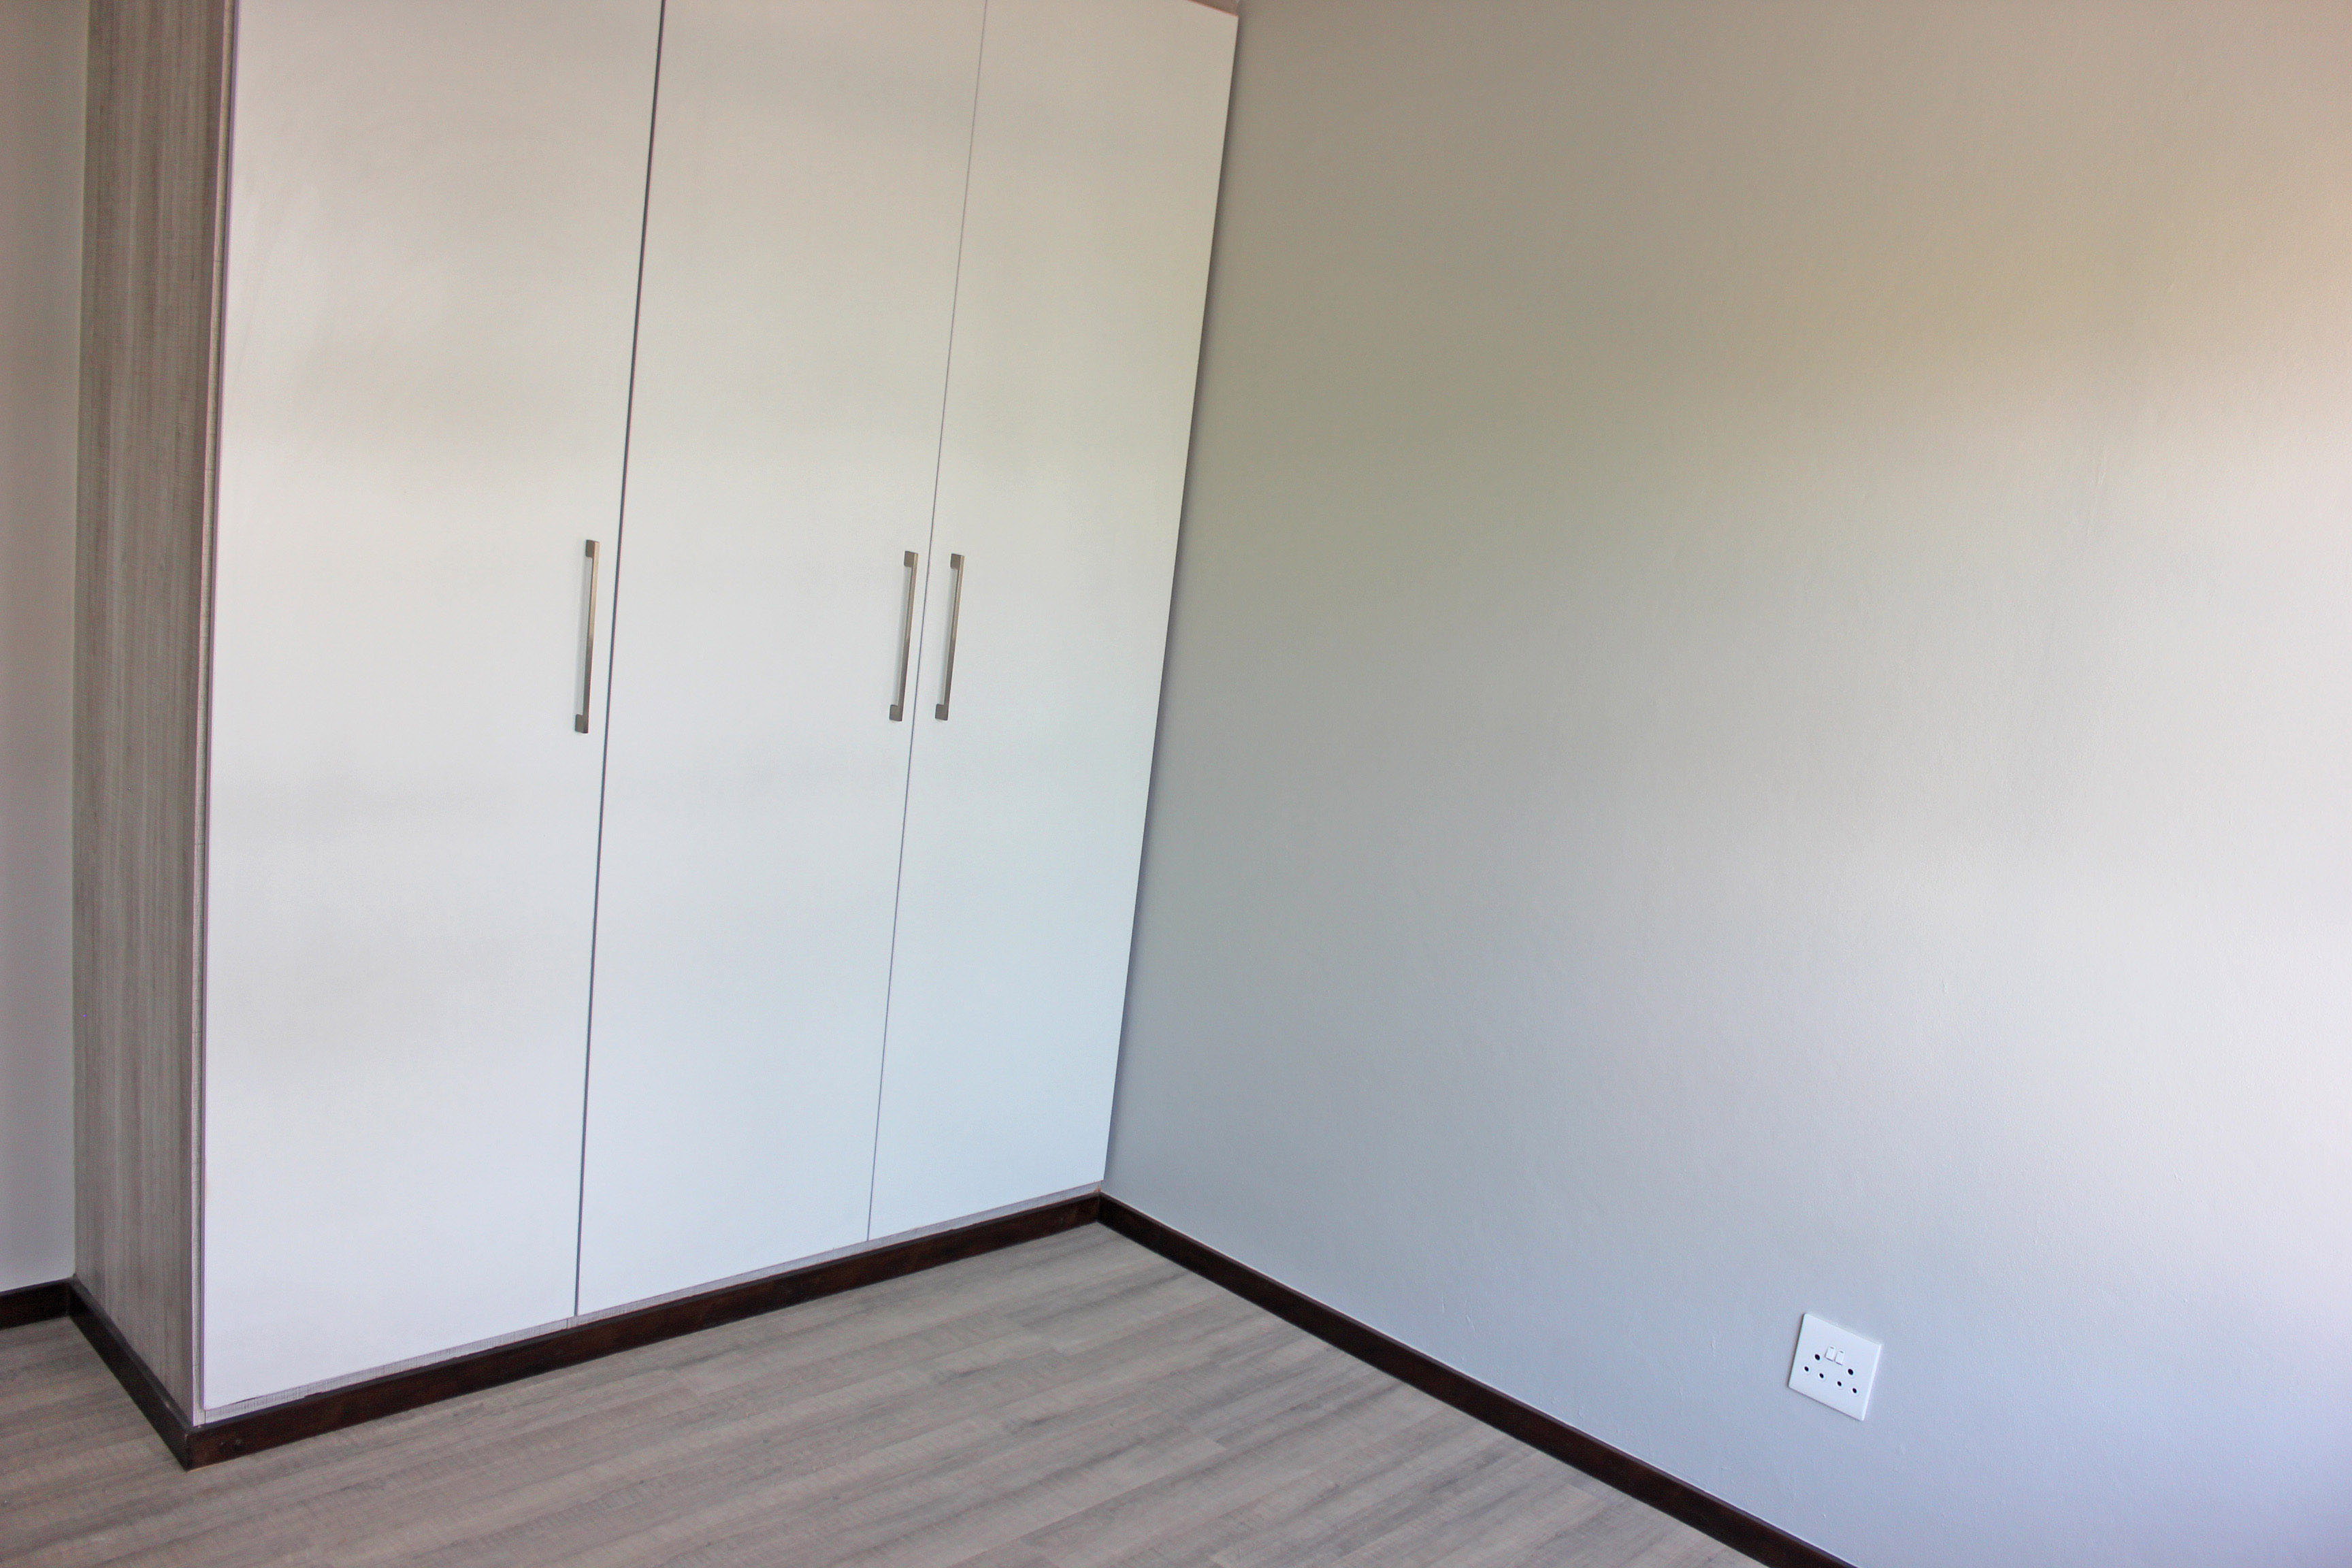 3 Bedroom Townhouse for sale in North Riding ENT0075308 : photo#6